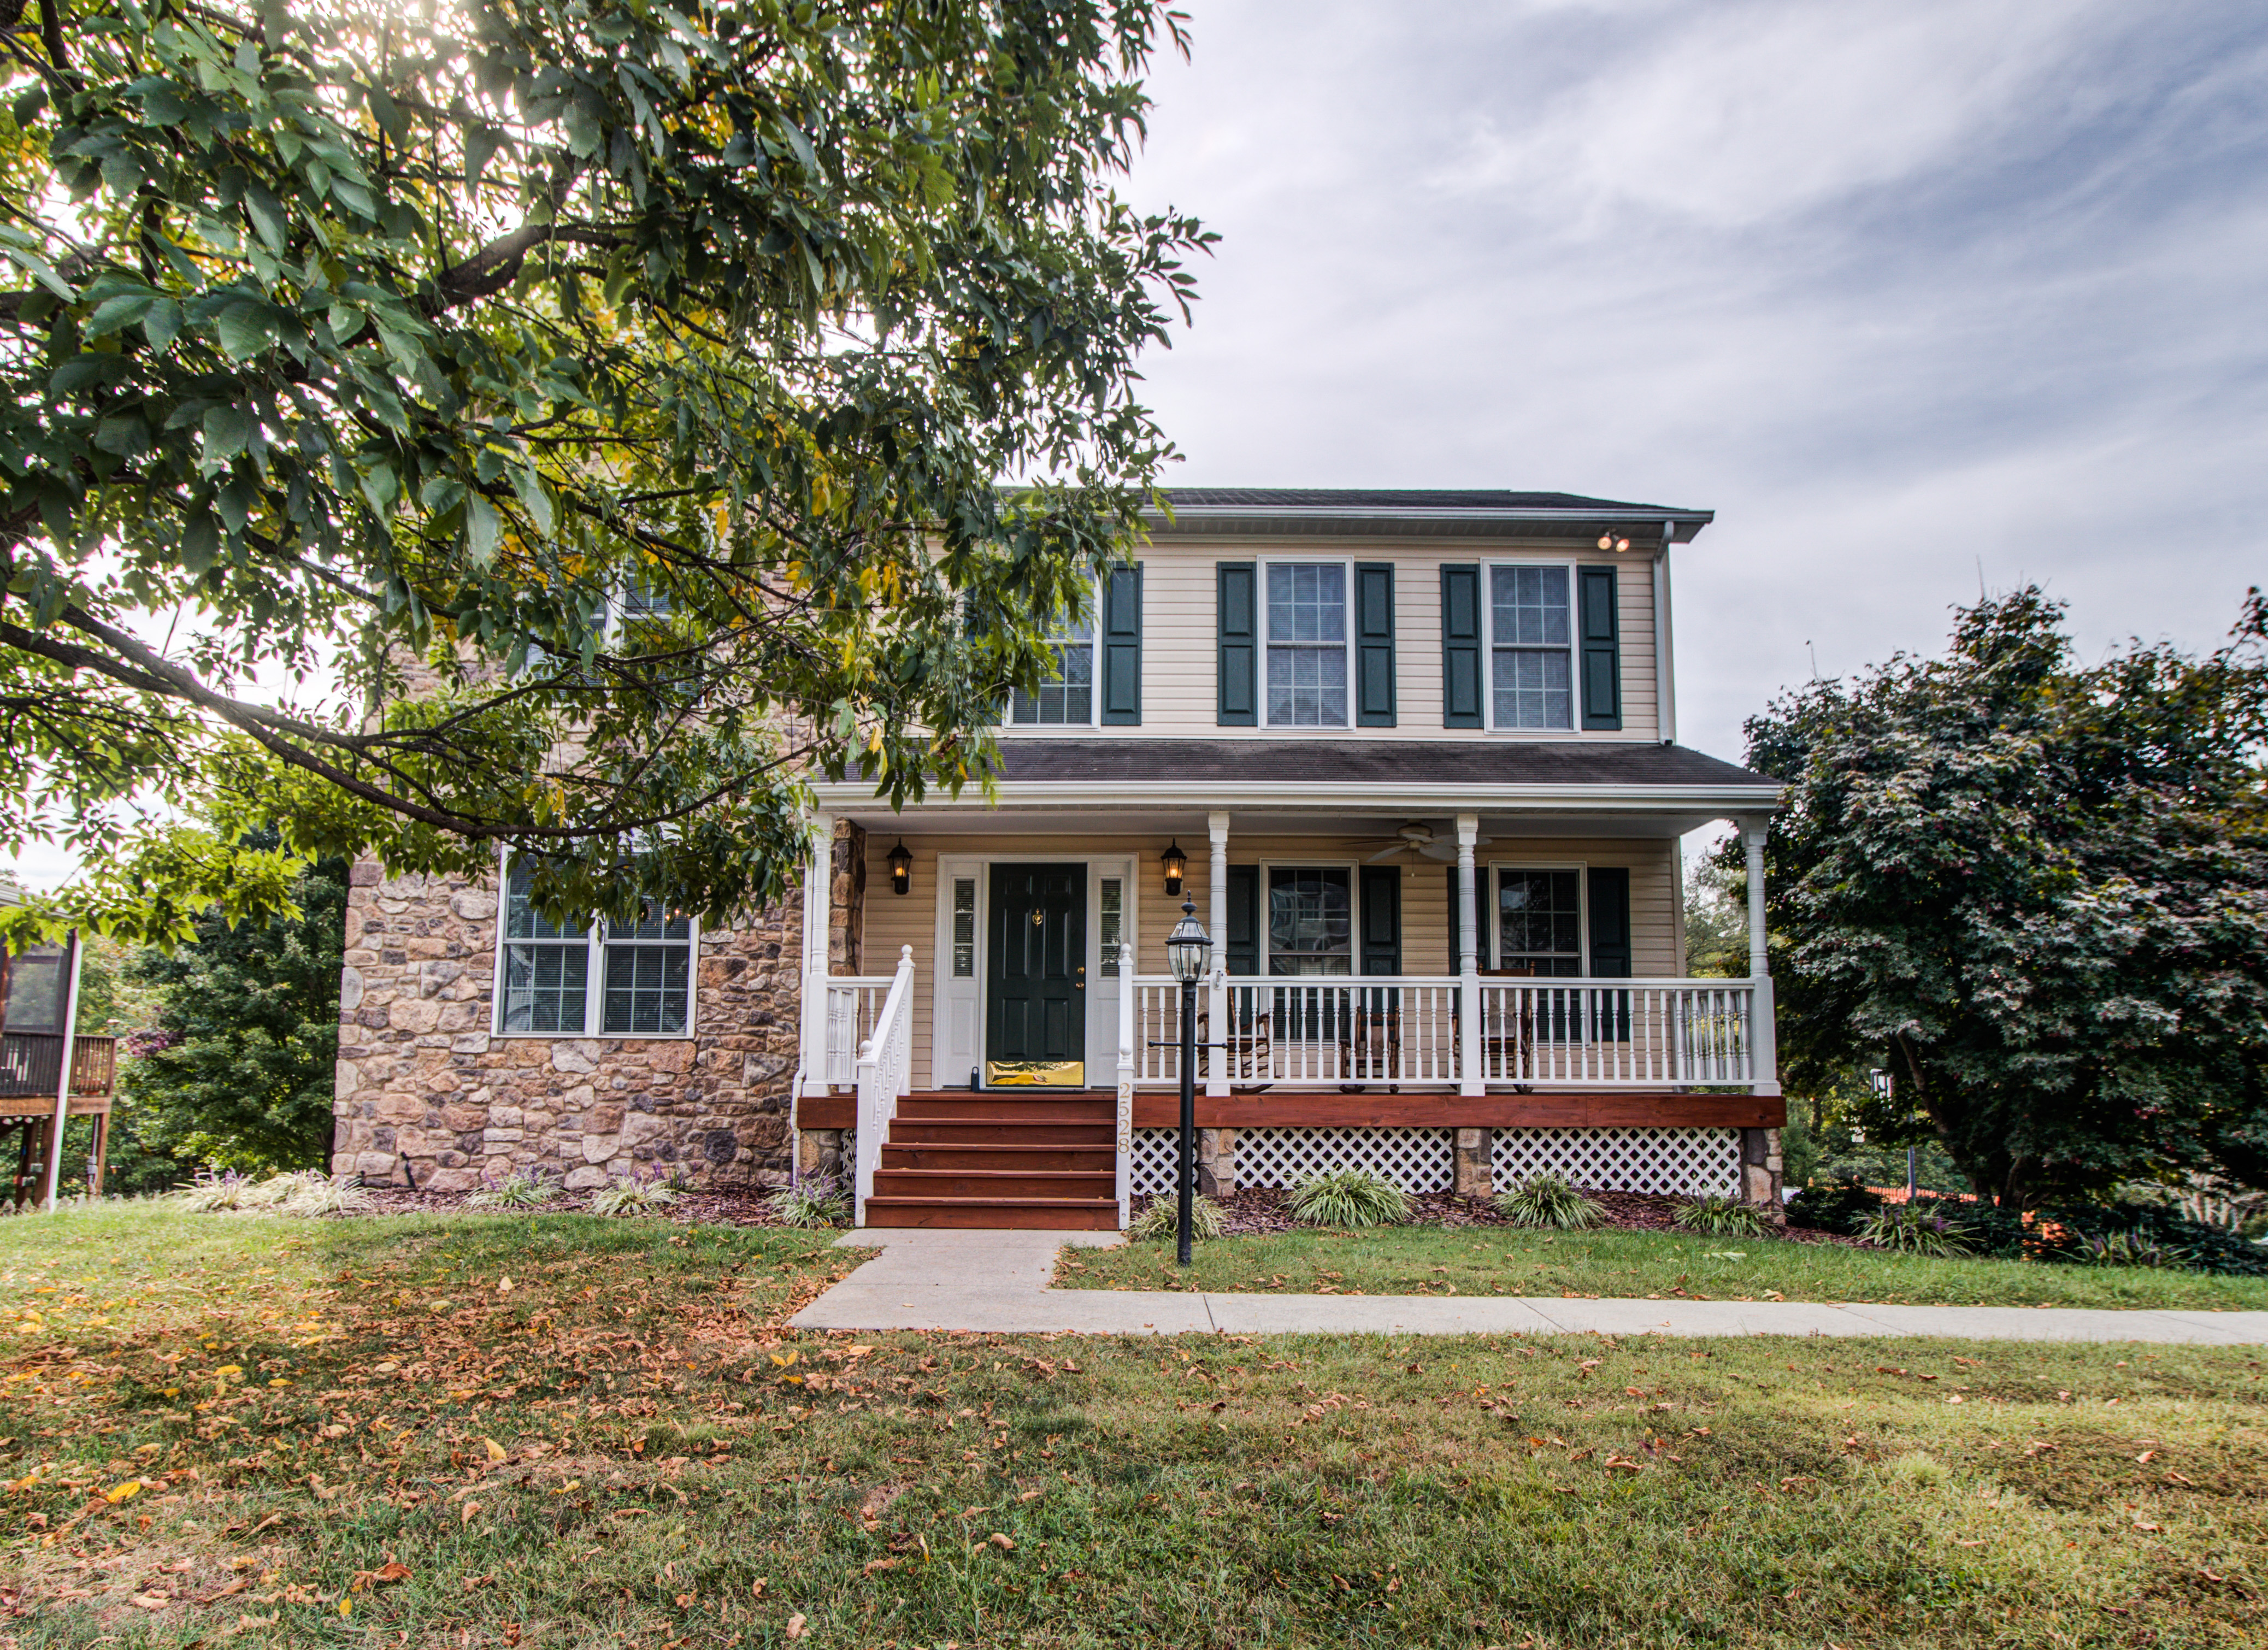 This Can Be A Brand New Image Of Patio Homes for Sale Vinton Va